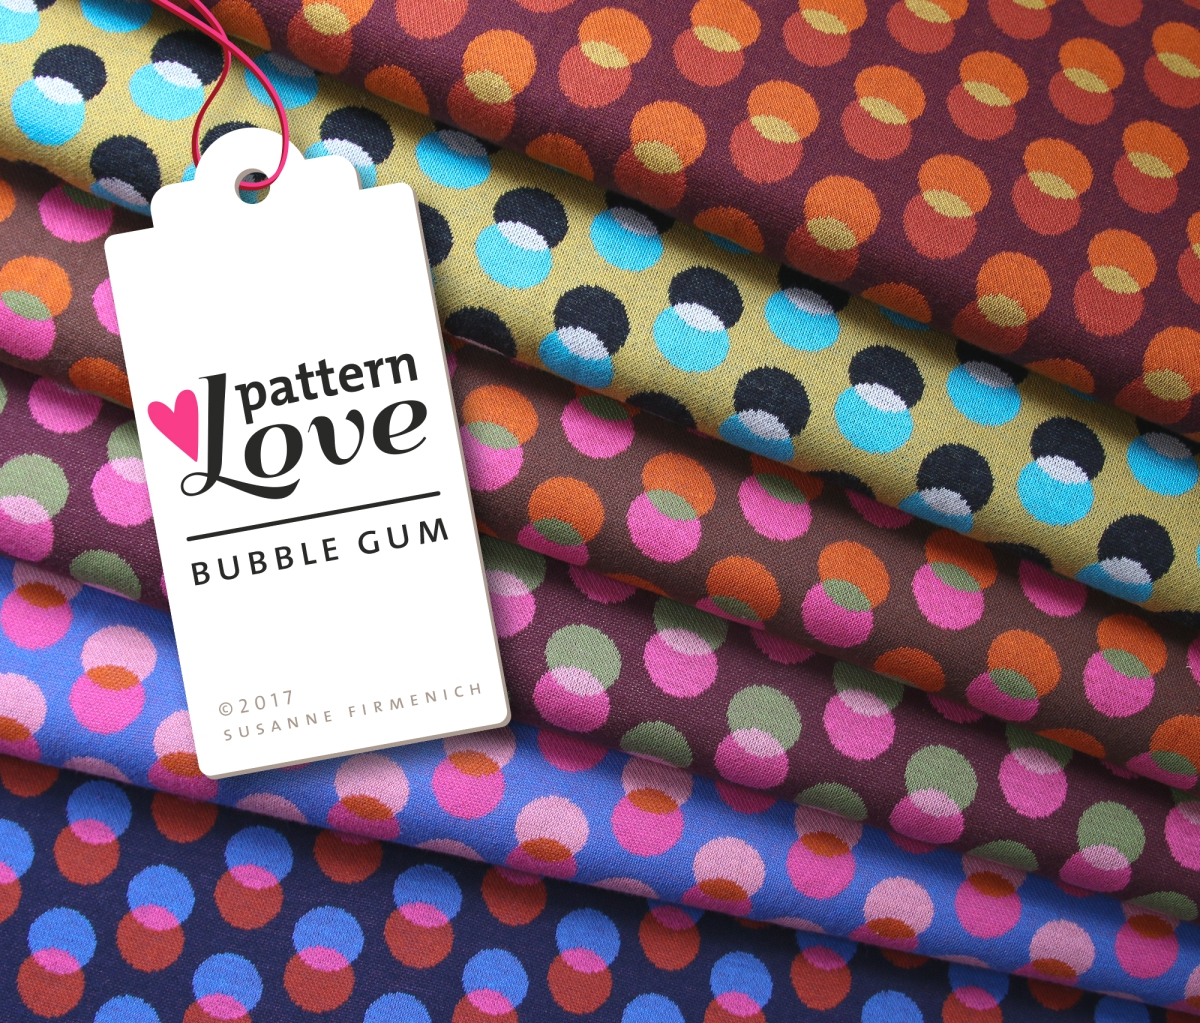 Pattern Love - Bubble Gum